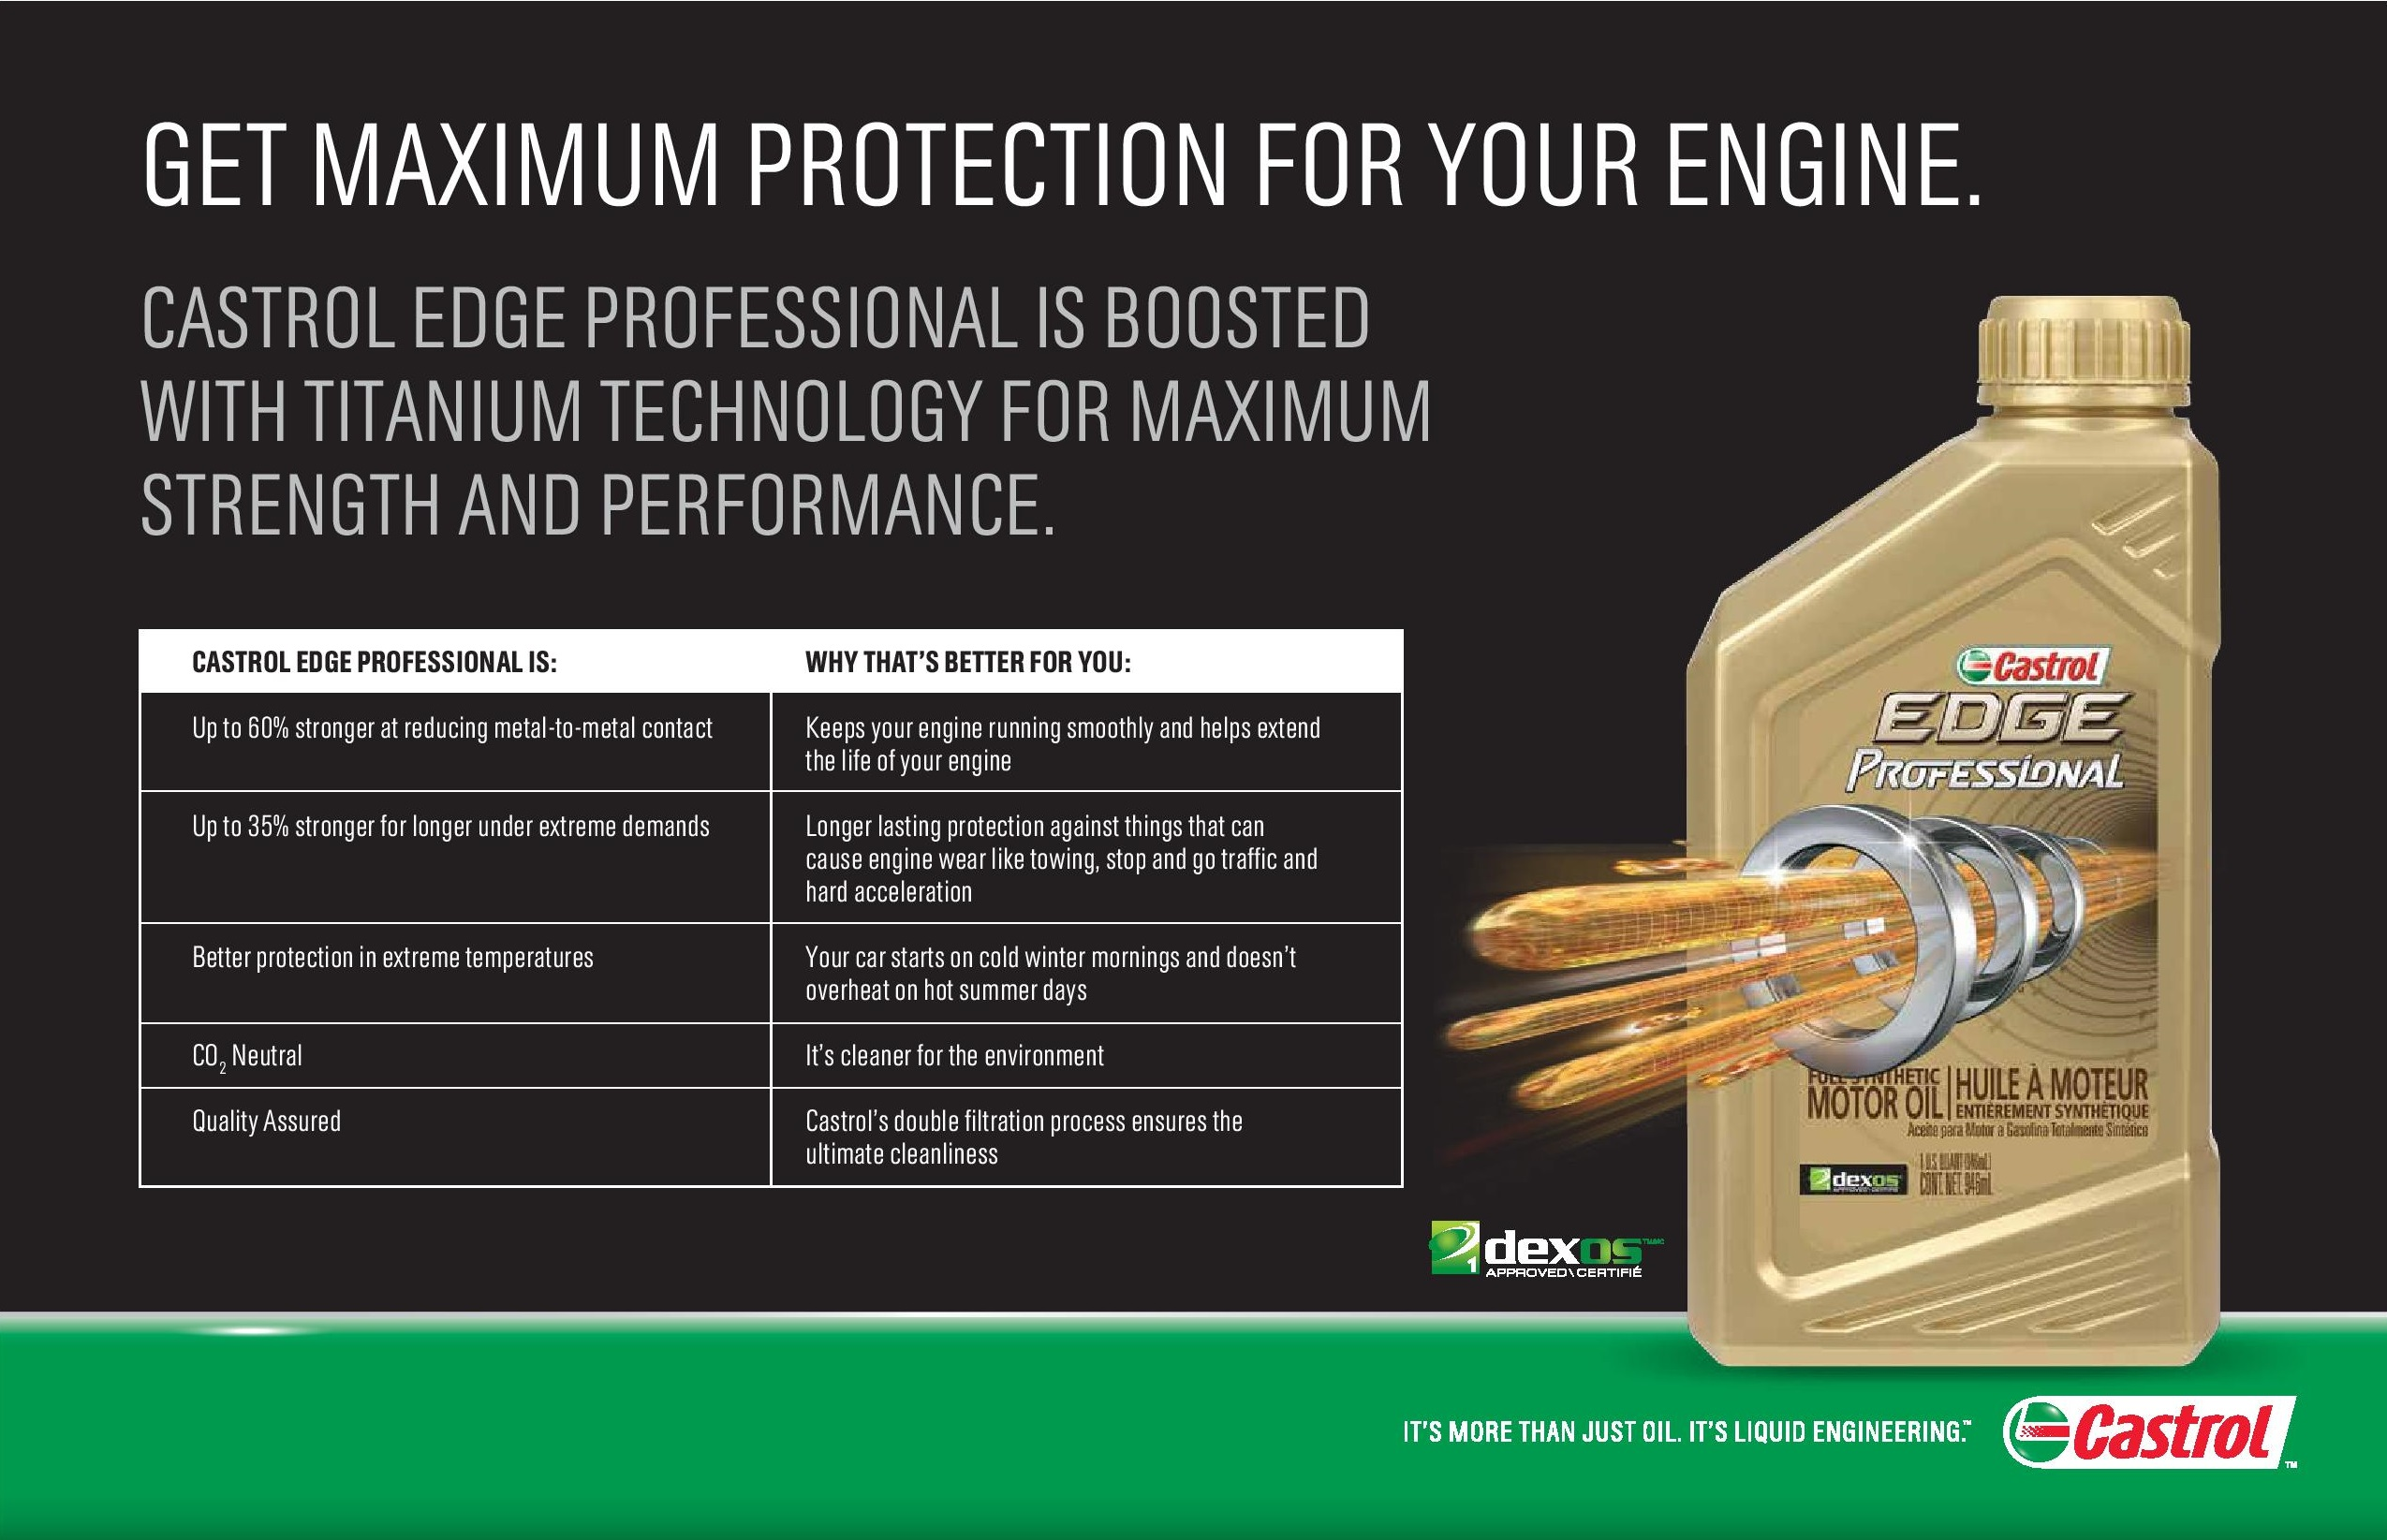 Castrol Edge Professional Advantages Ajax Durham